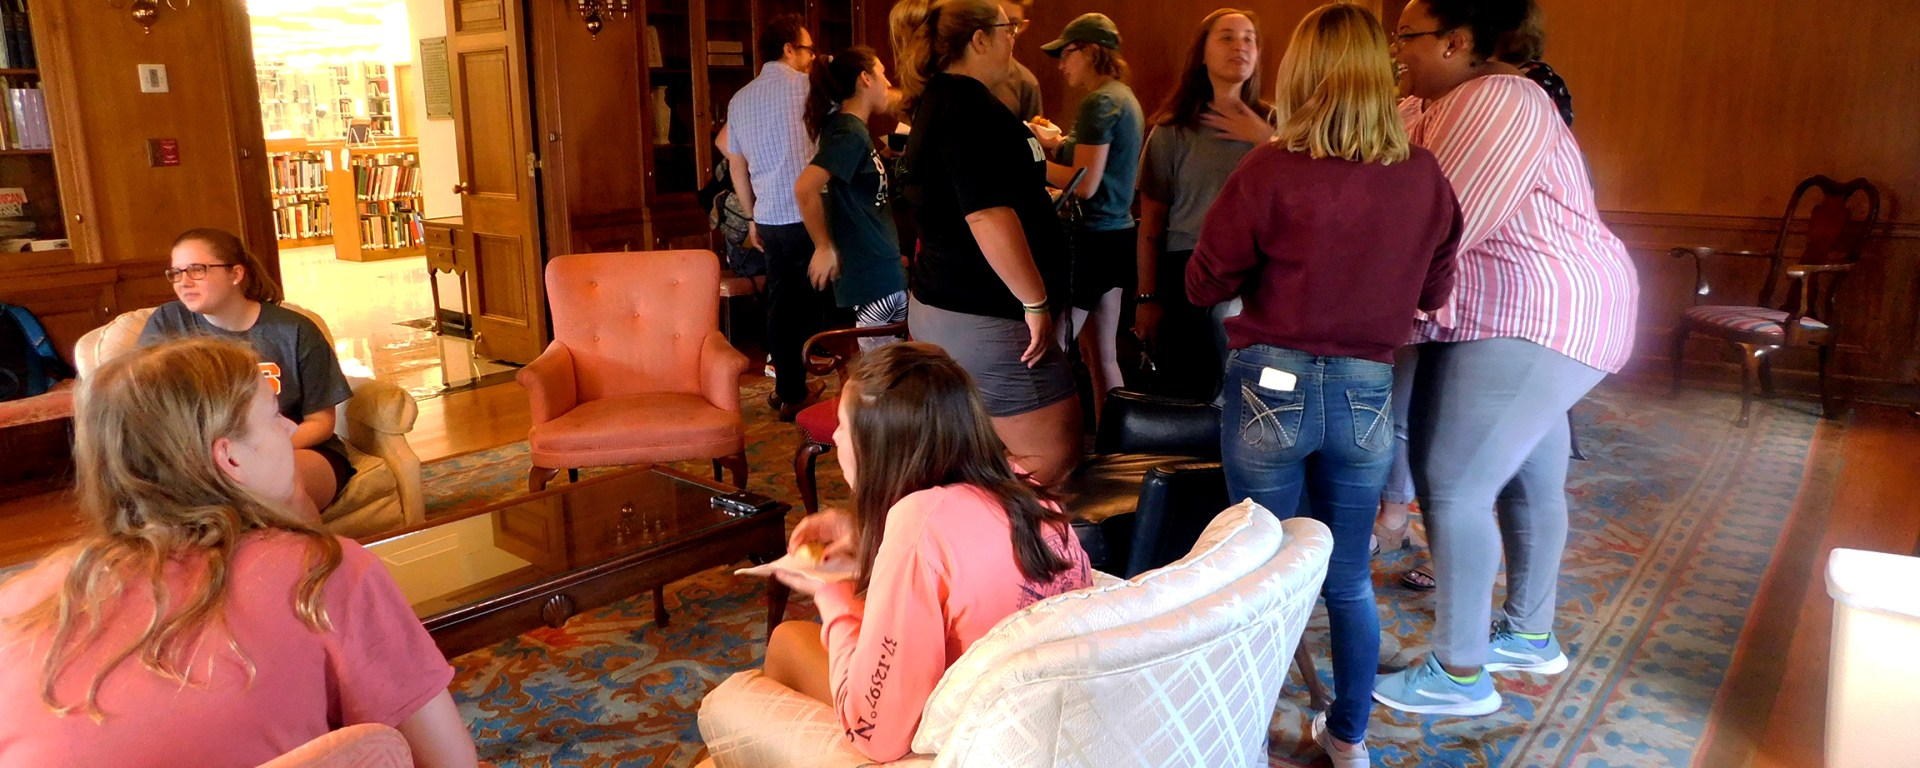 Students mingle at the first Café Français event in Perkins Library.